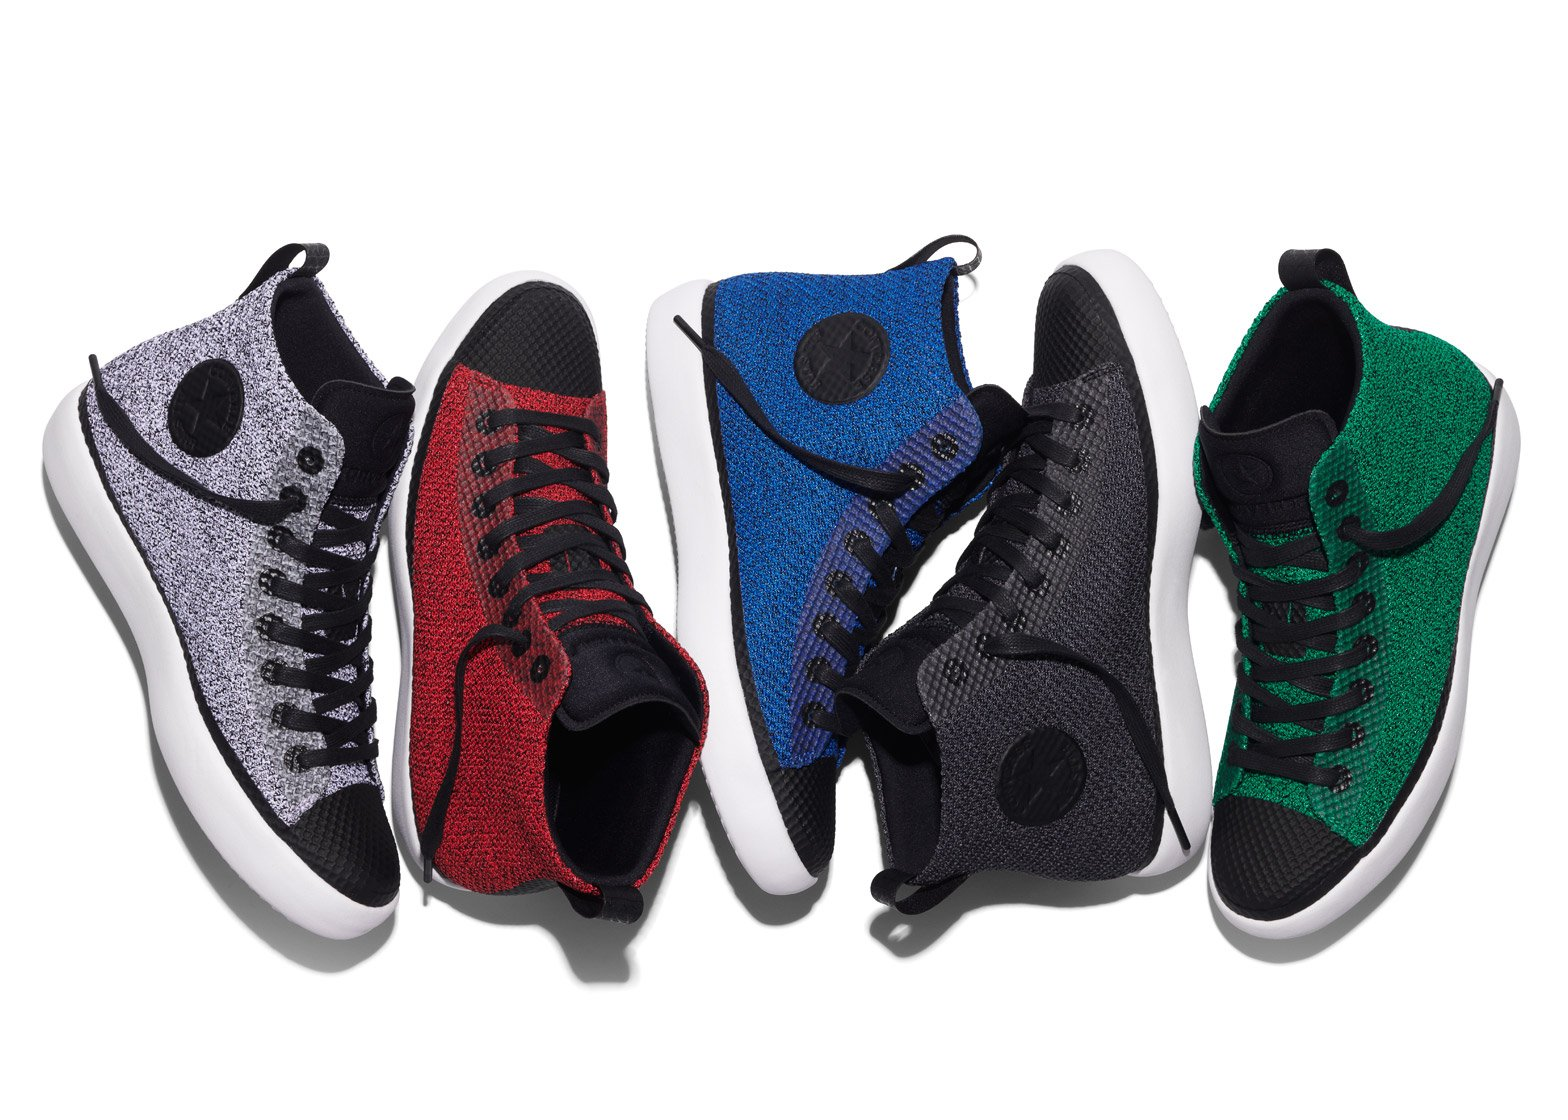 f84ae31dfeae Converse continues updates with All Star Modern trainer